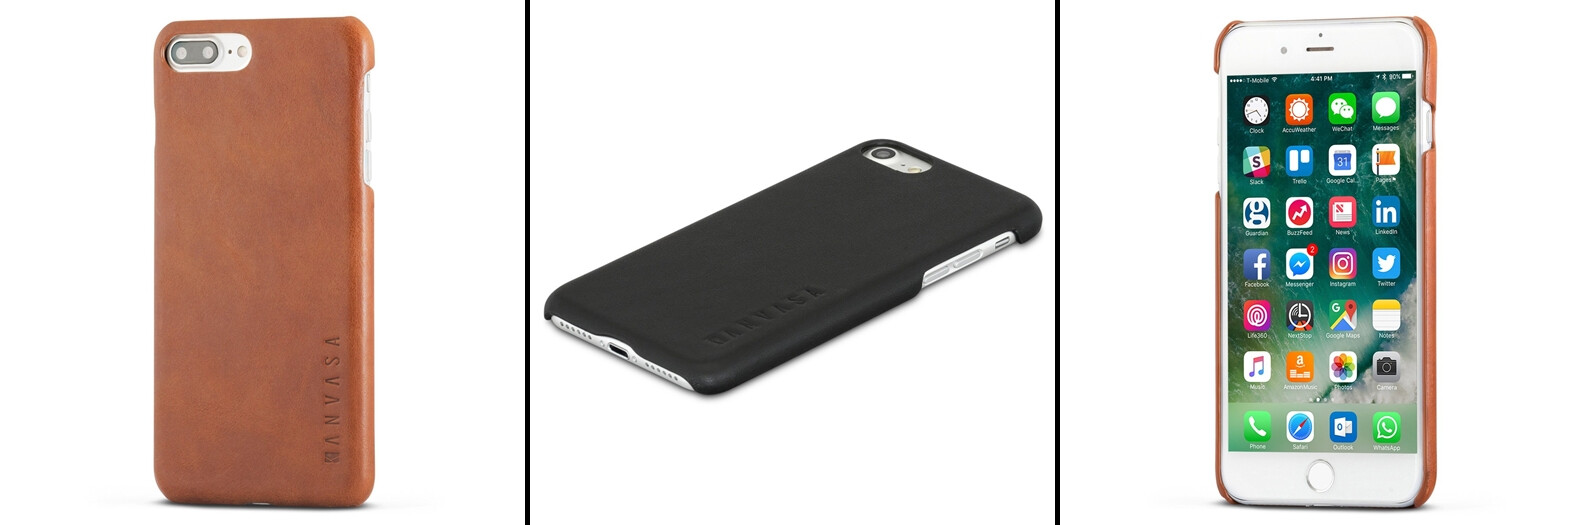 buy popular 0e11e 4b3d6 The best leather cases for the iPhone 8 and iPhone 8 Plus - PhoneArena